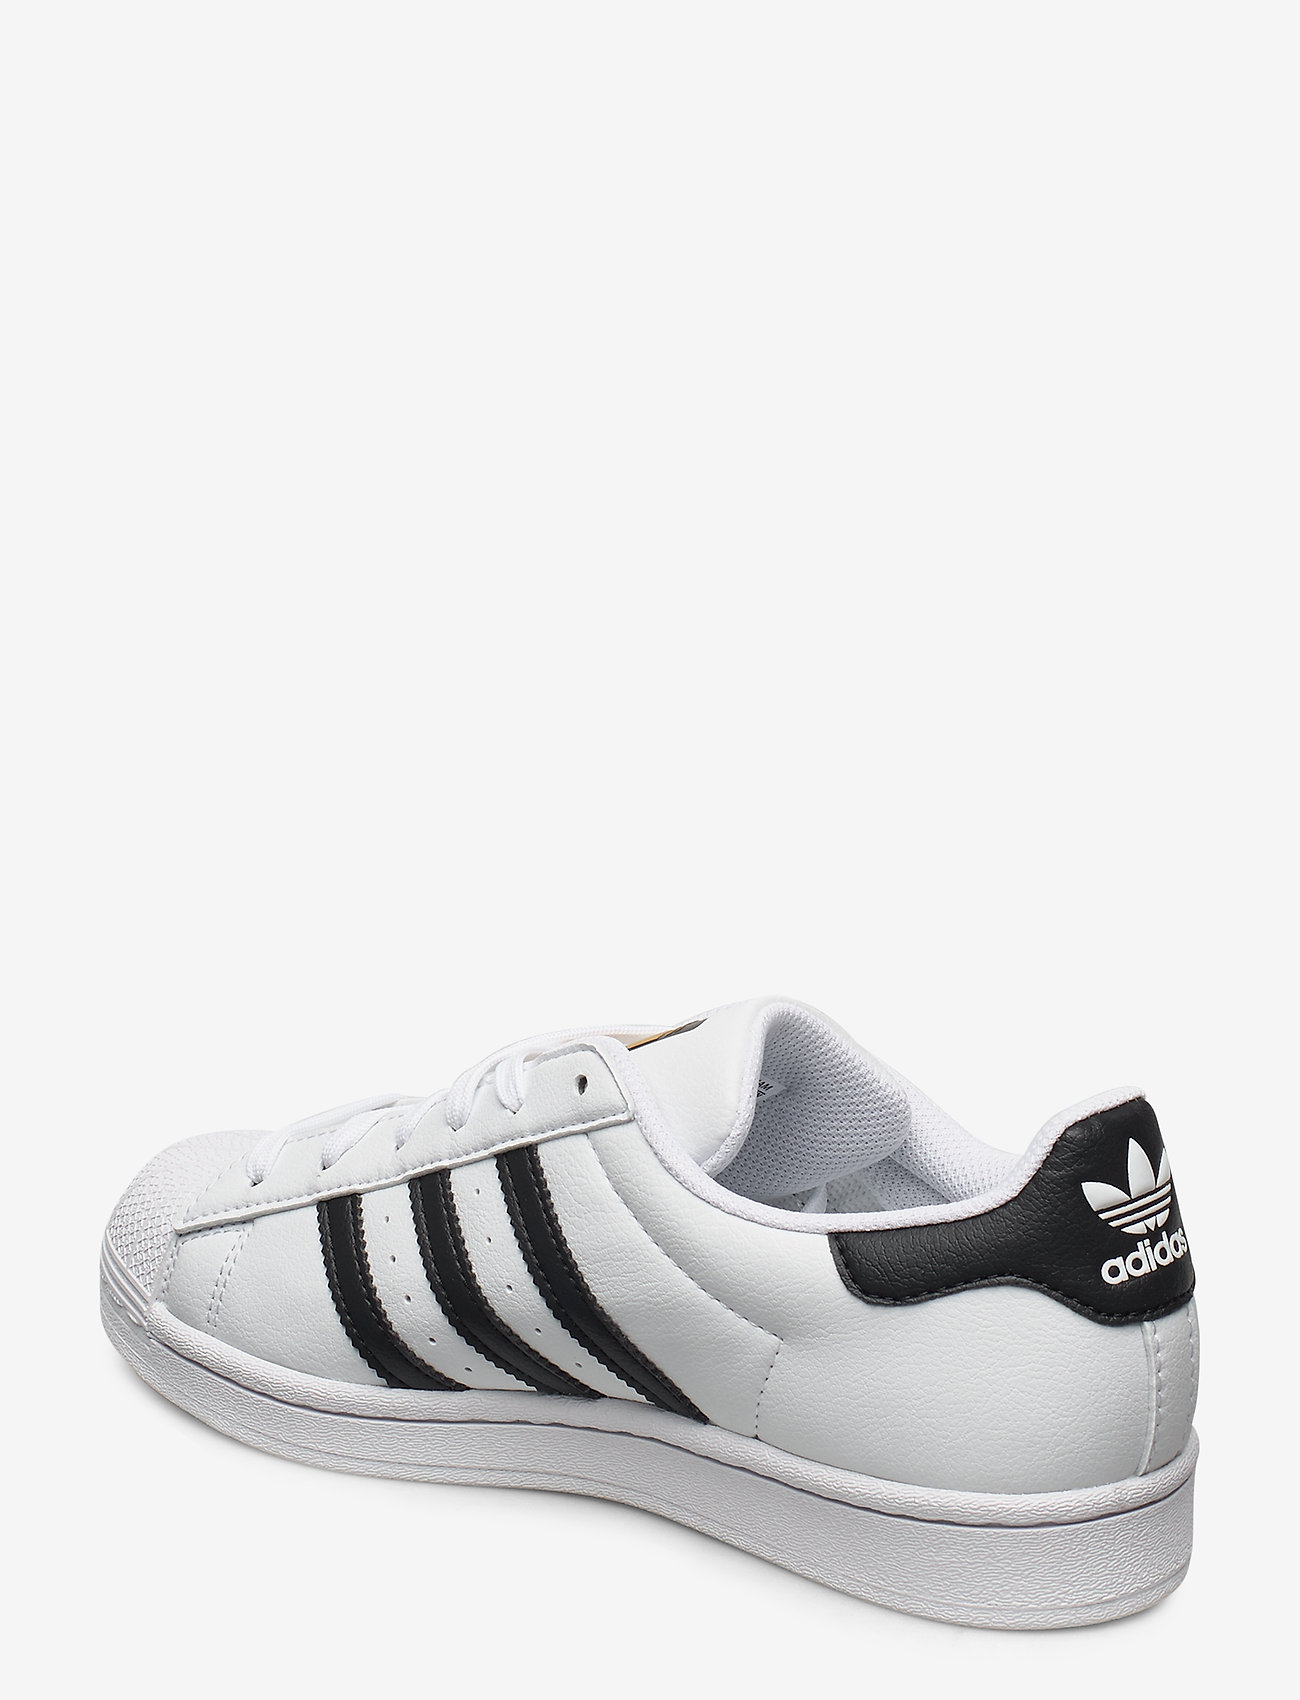 Superstar Vegan (Ftwwht/cblack/green) (75 €) - adidas Originals TabAq